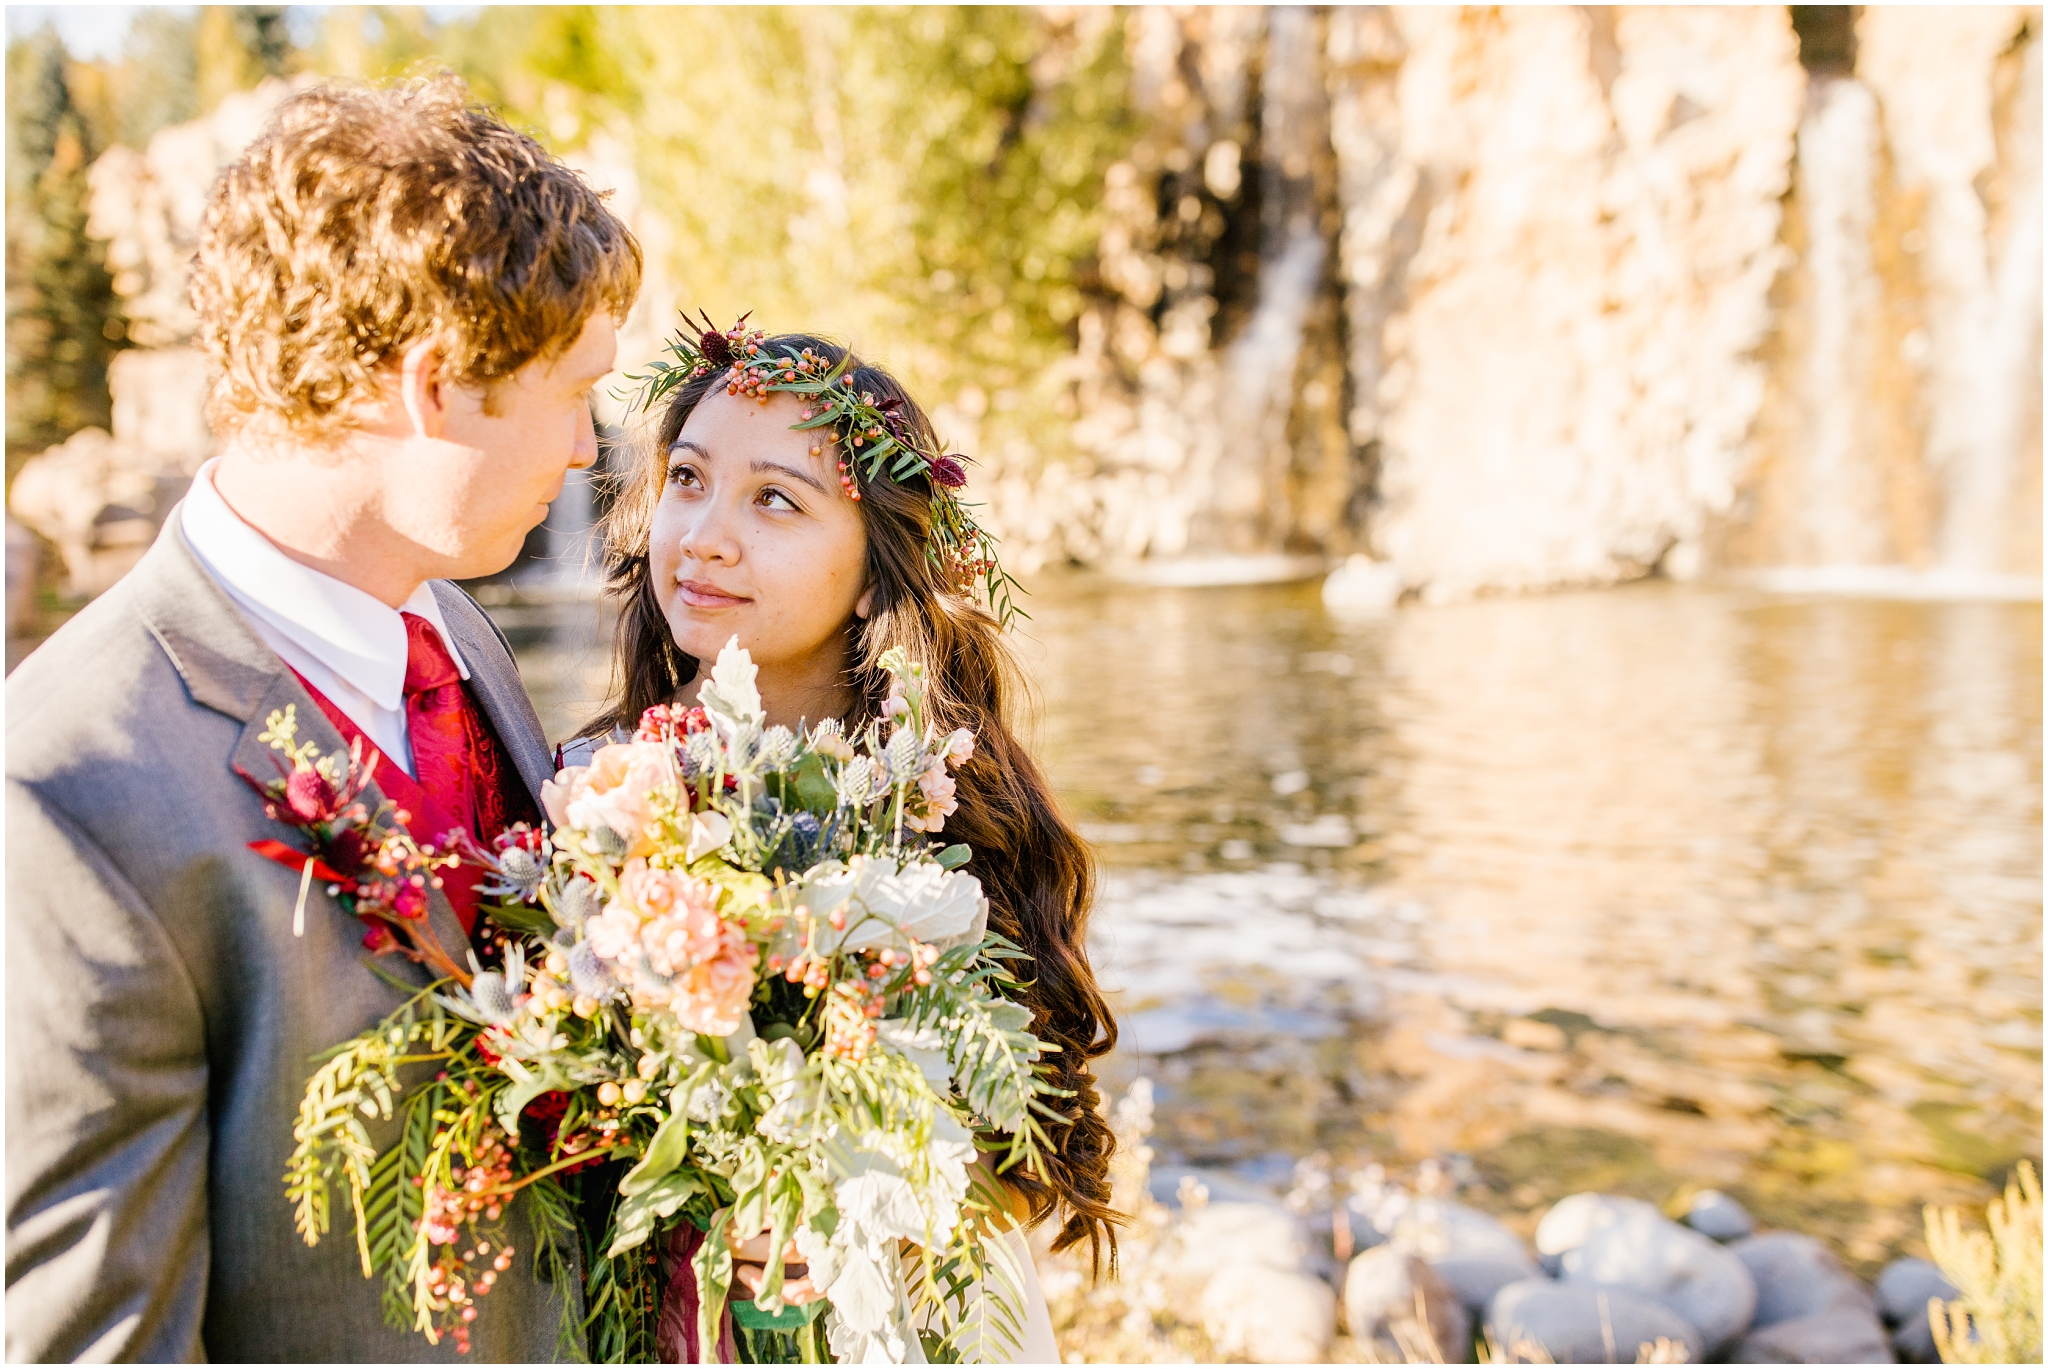 JB-Bridals-114_Lizzie-B-Imagery-Utah-Wedding-Photographer-Utah-County-Thanksgiving-Point-Ashton-Gardens.jpg